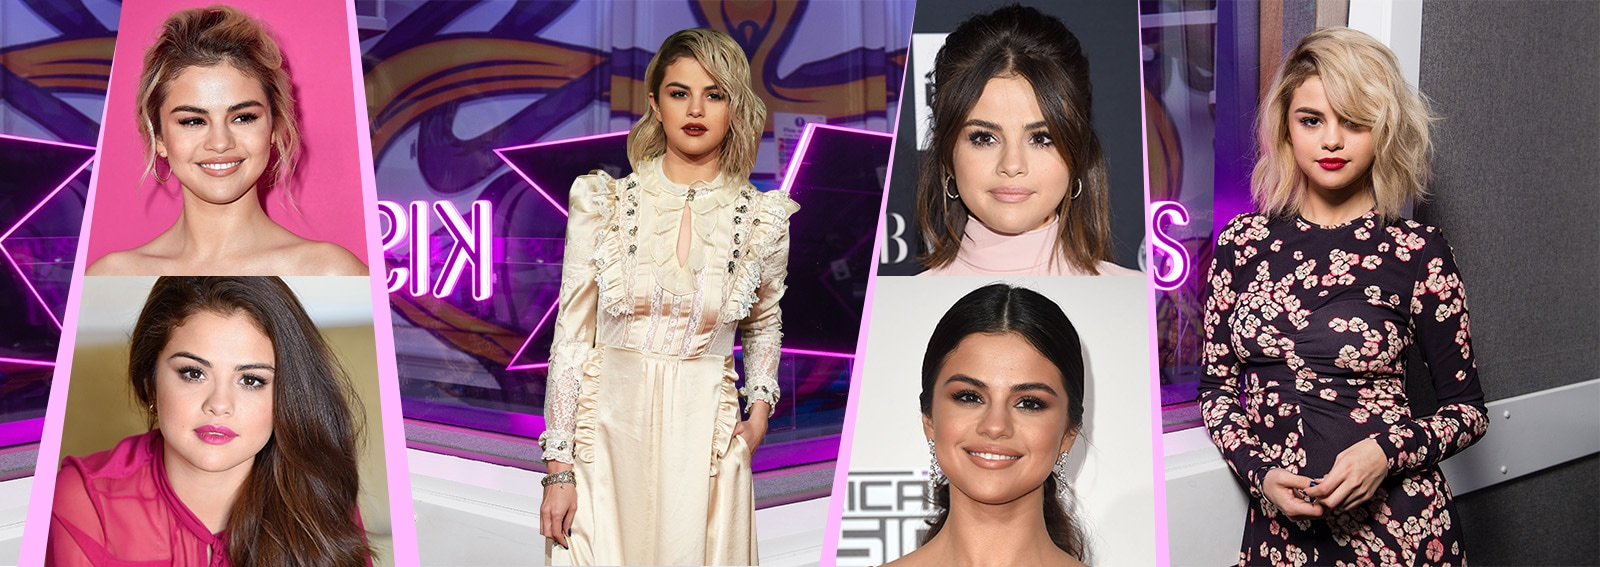 selena gomez beauty look DESKTOP_Selena_gomez_BL